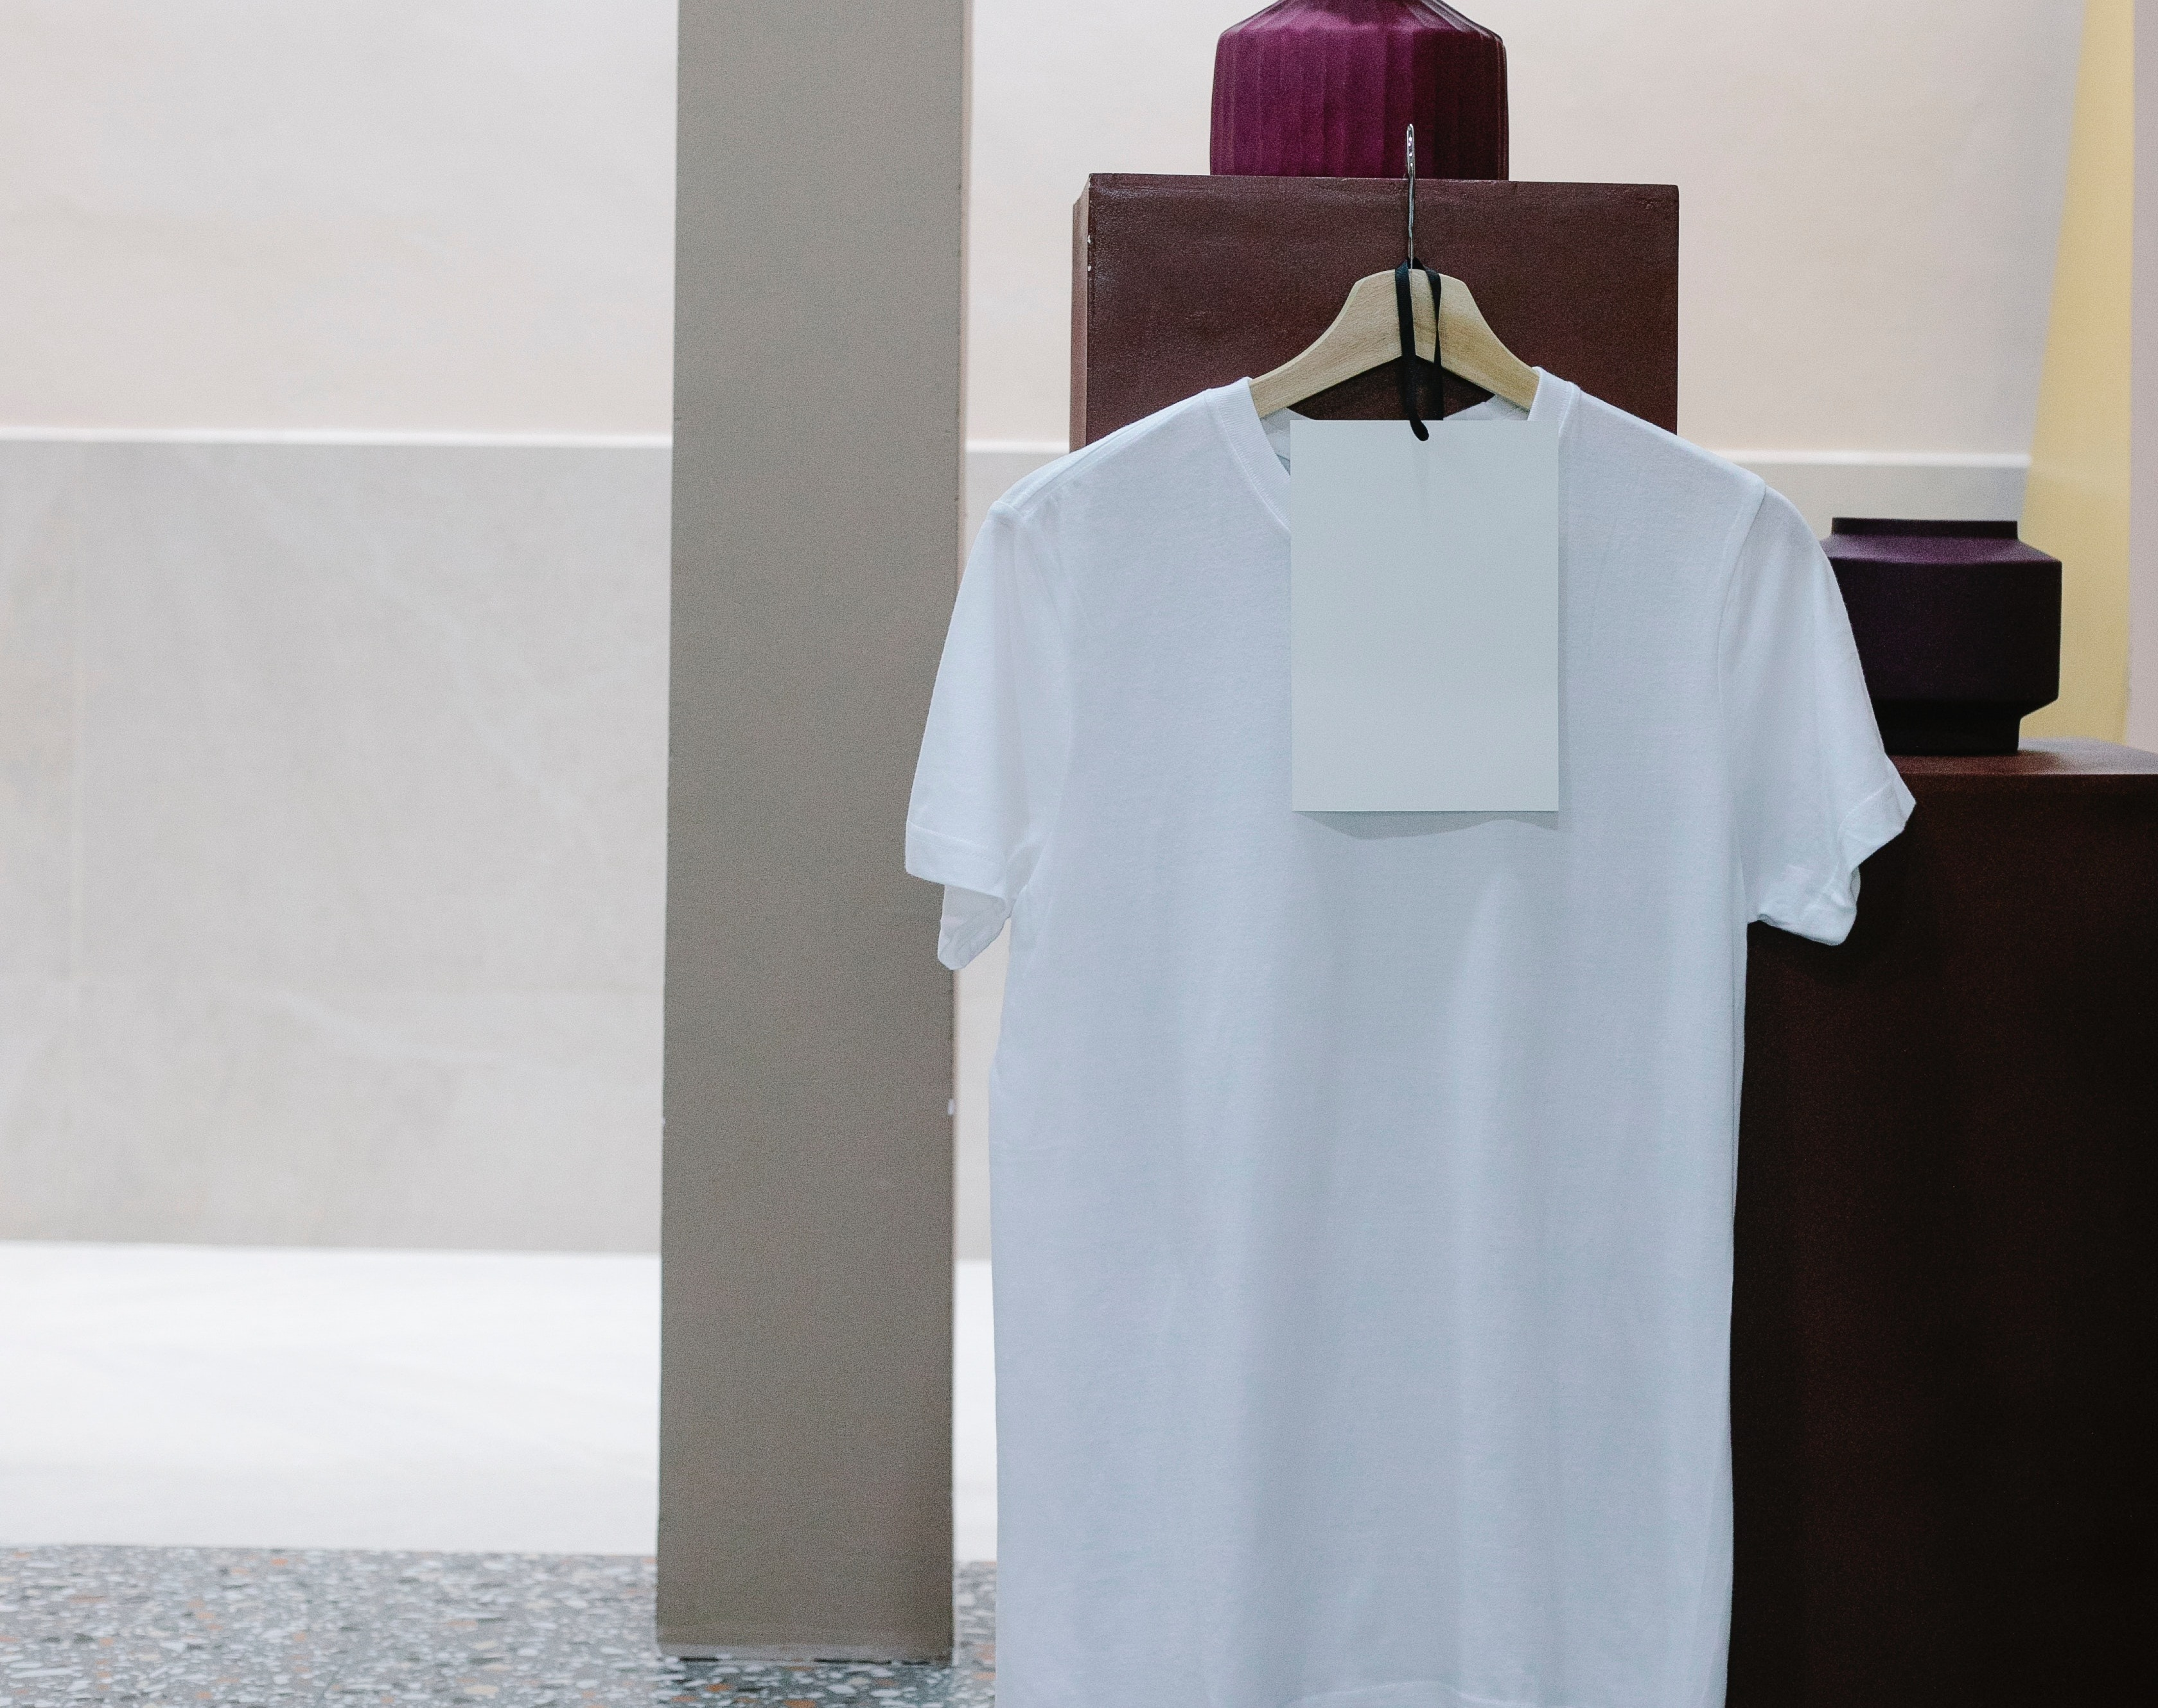 t-shirt with price tag